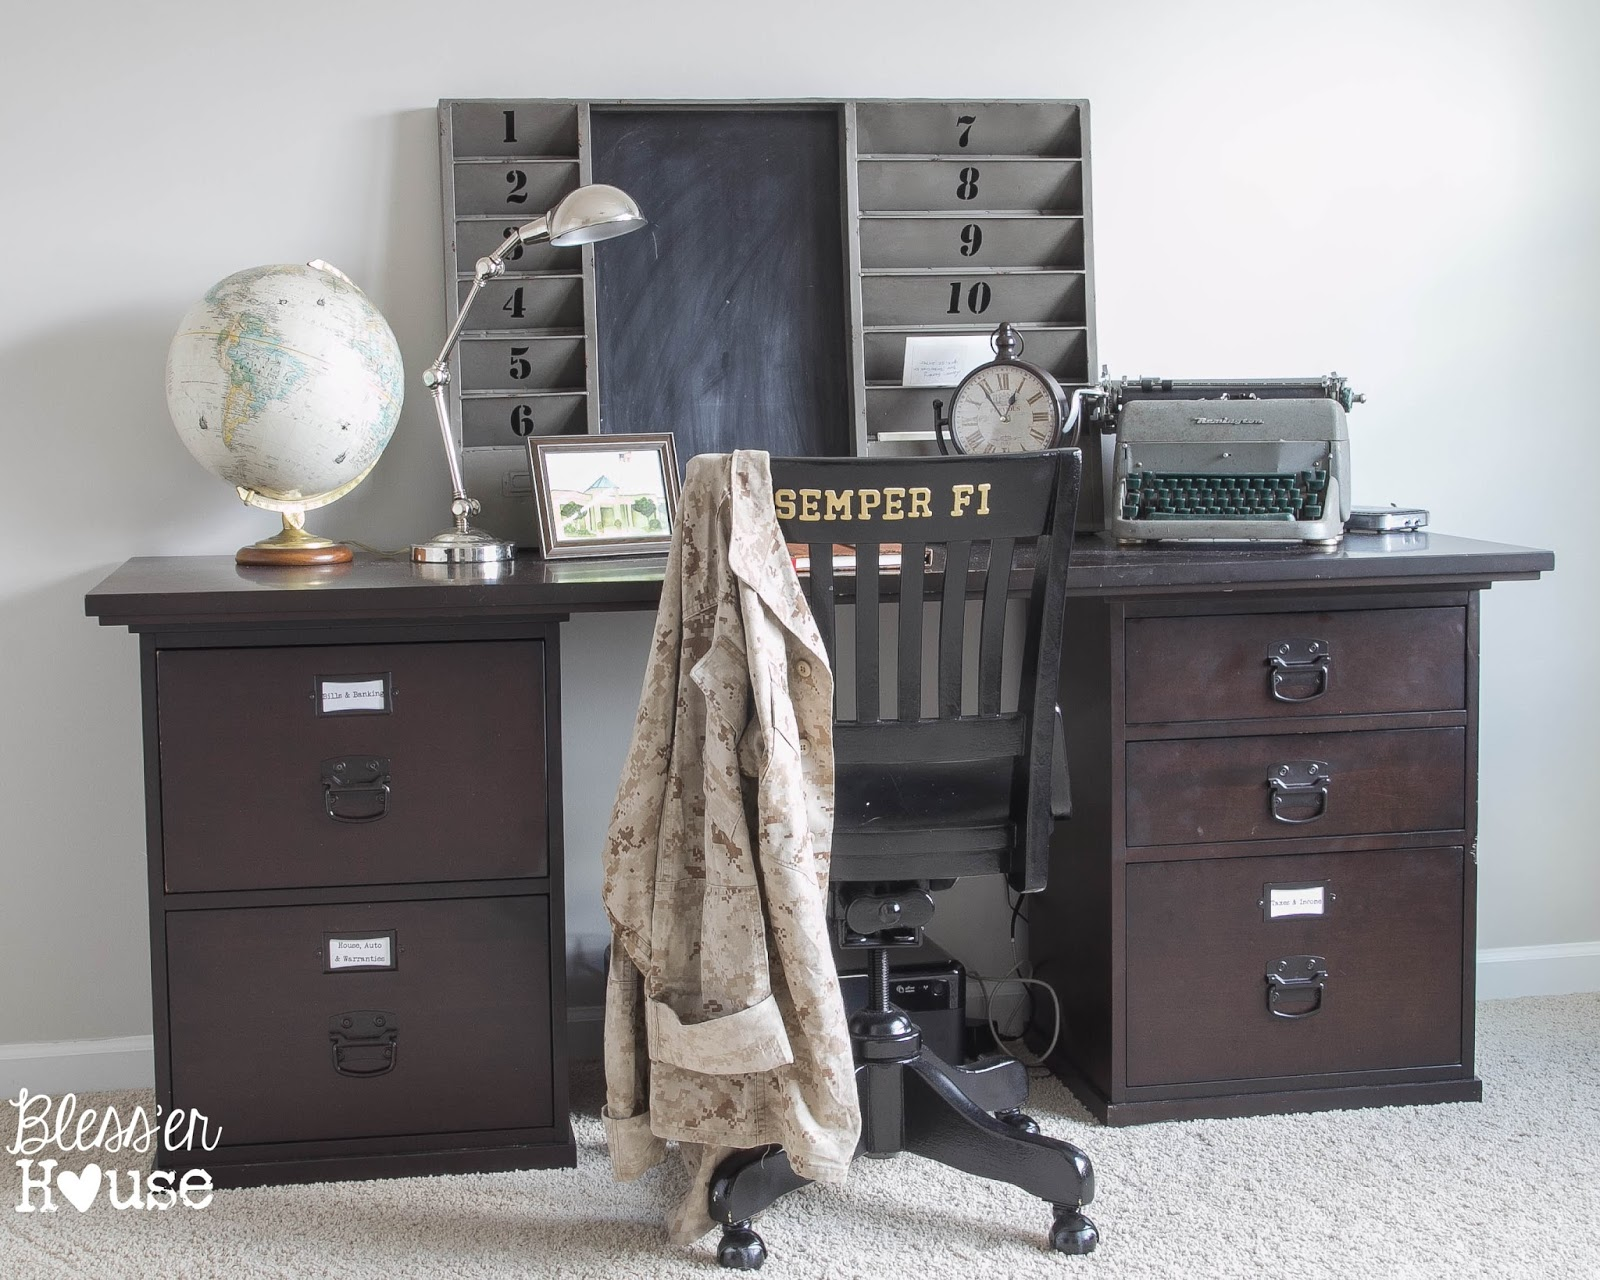 Vintage Inspired OfficeBless'er House-How I Found My Style Sundays- From My Front Porch To Yours